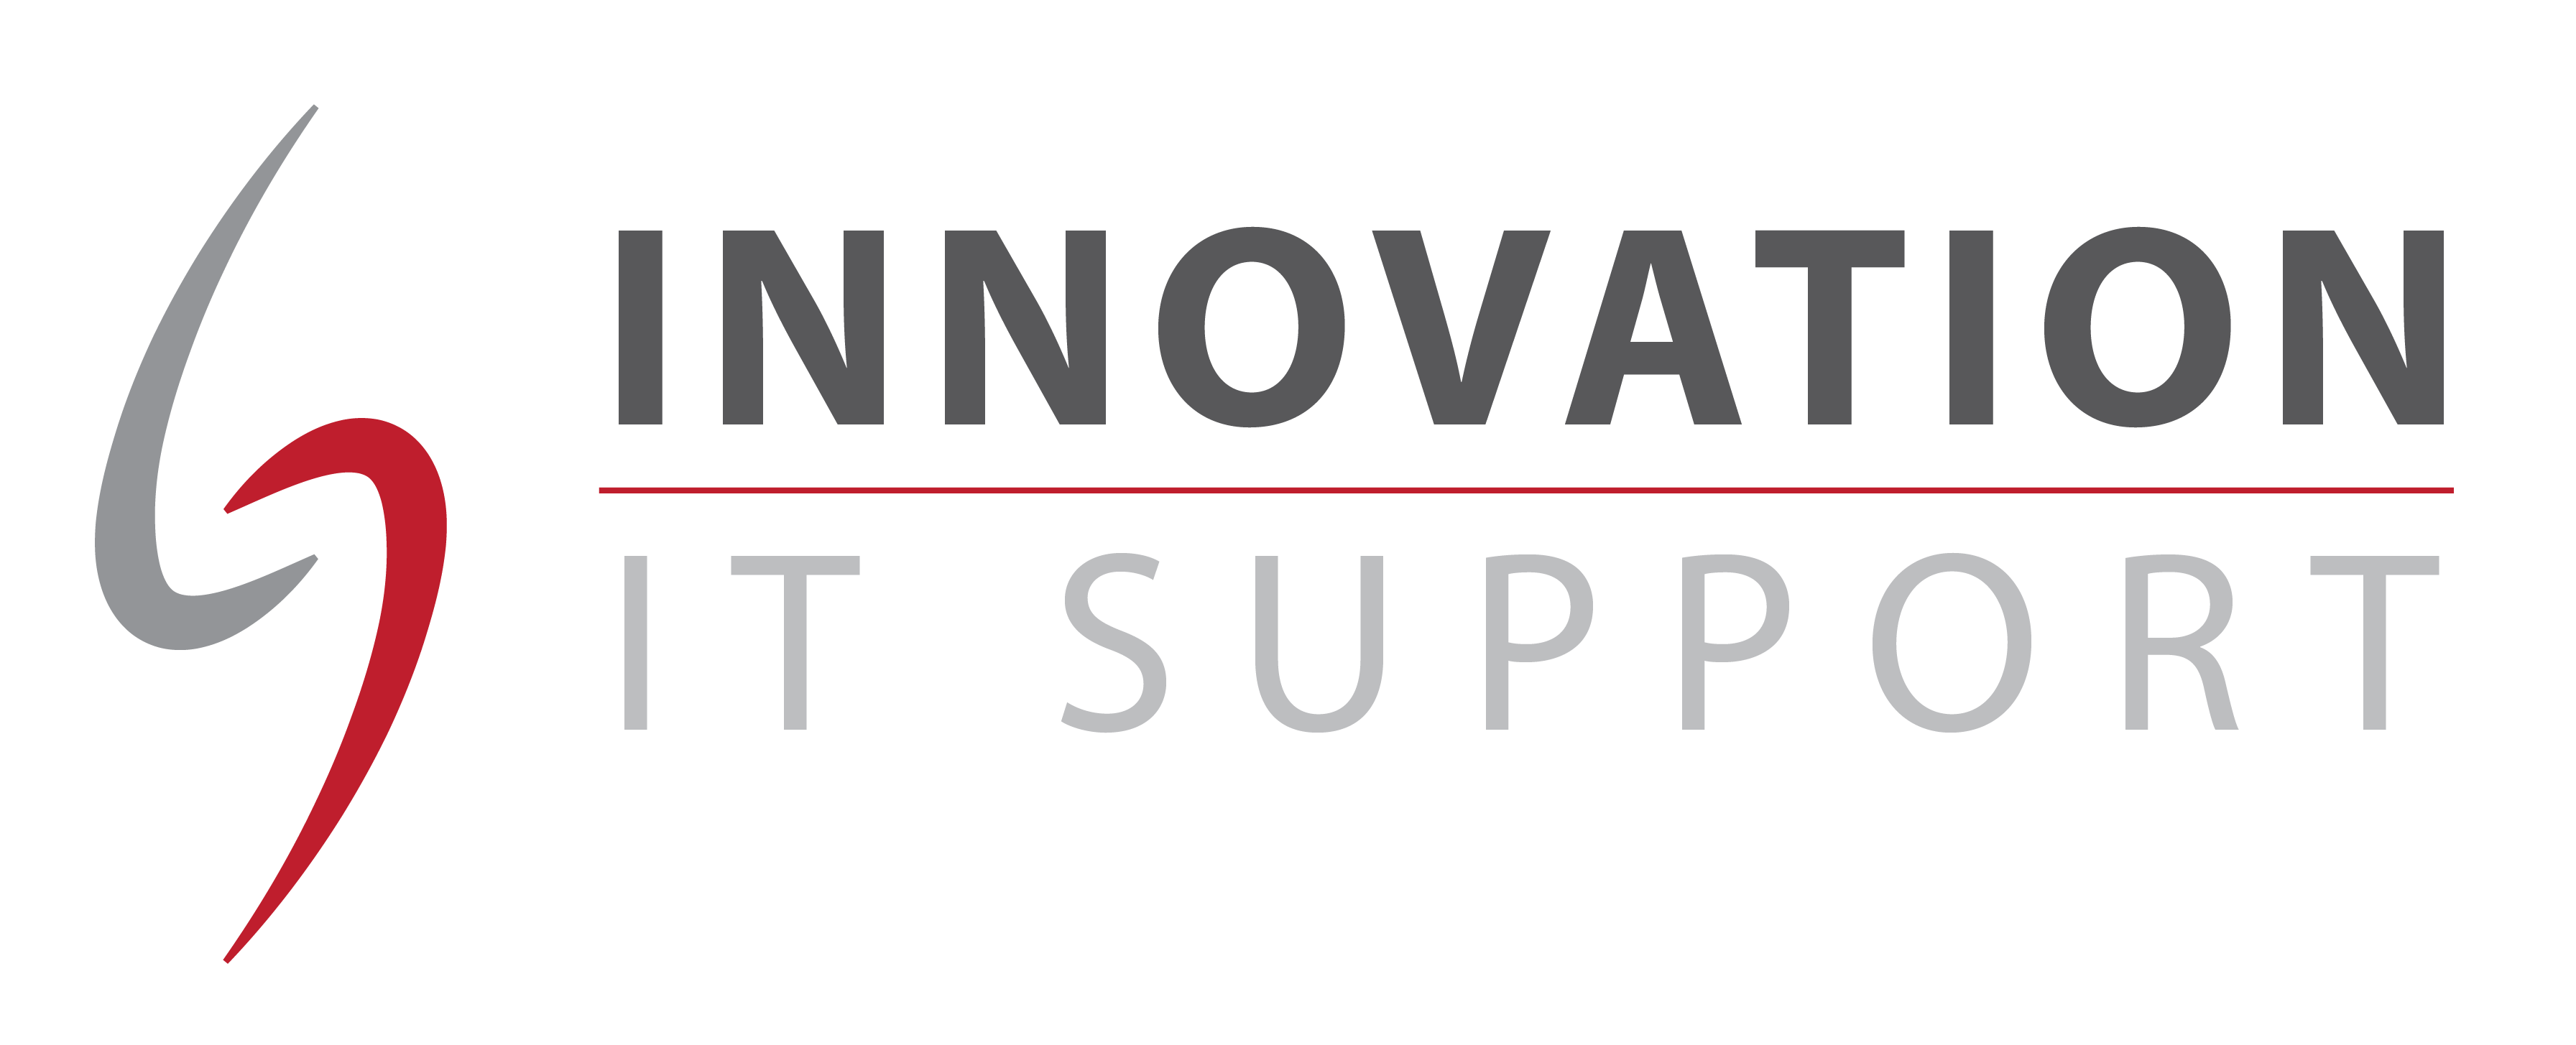 Innovation IT Support Ltd